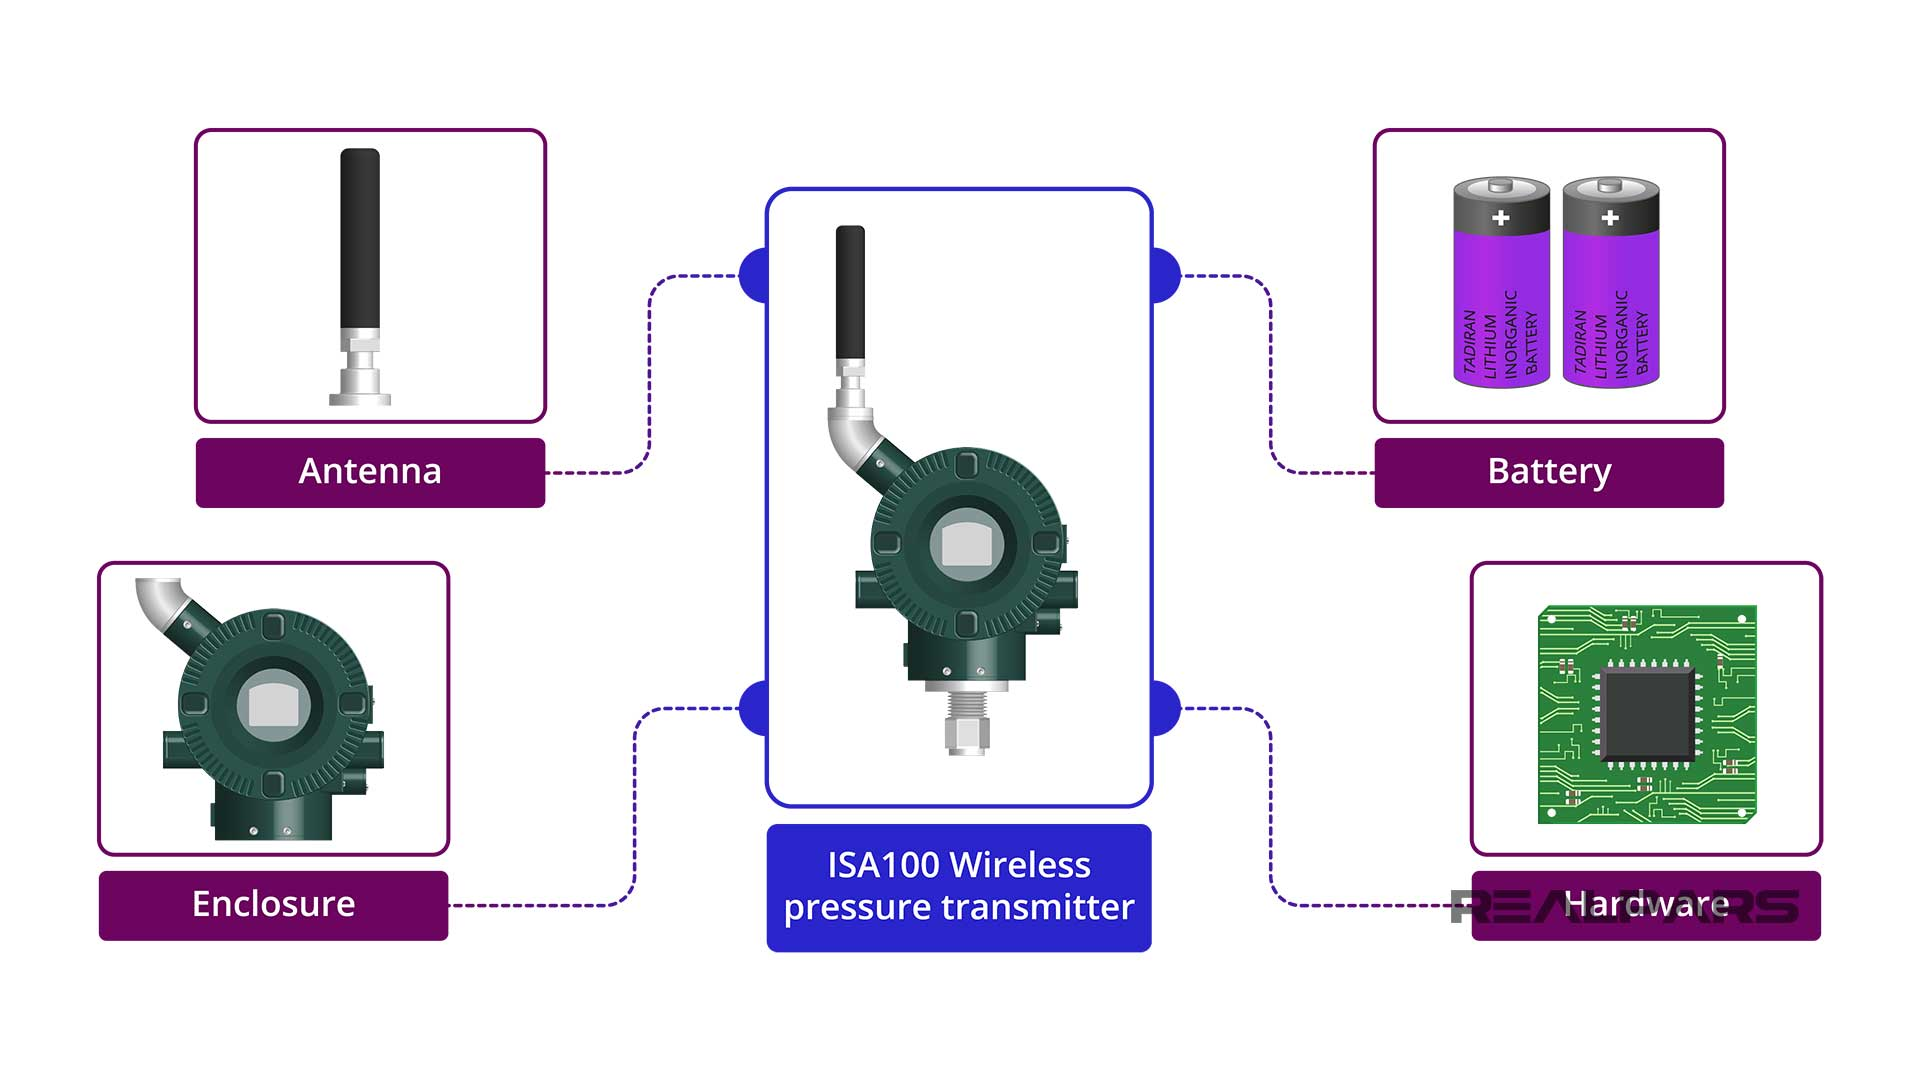 ISA100 Wireless product hardware and firmware